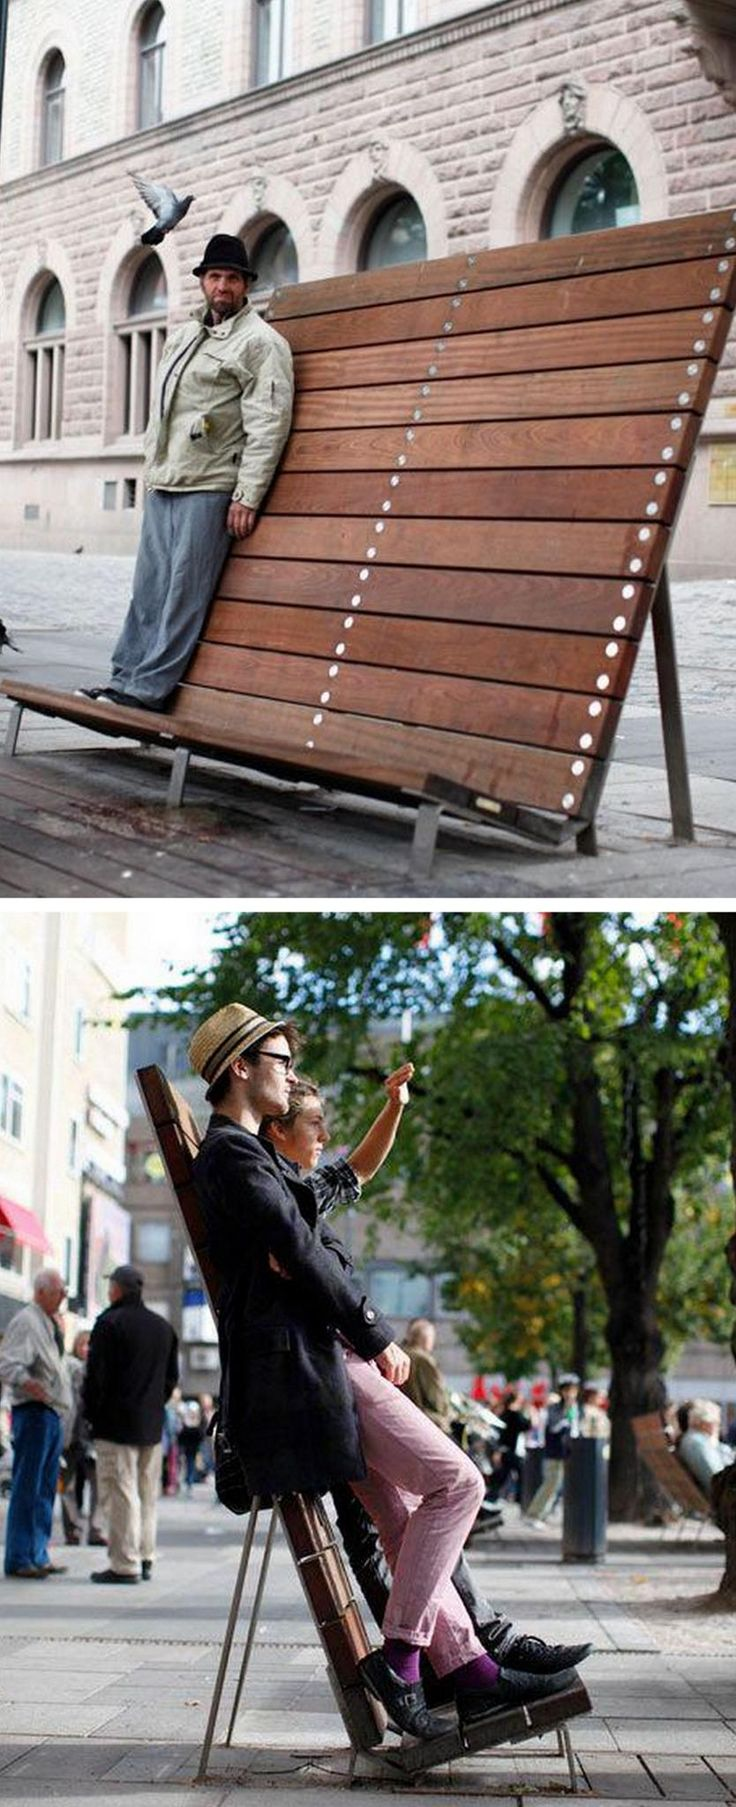 Kajen Planka / Fence seating by Thomas Bernstrand for Nola. Click image for link to full description and visit the slowottawa.ca boards >> https://www.pinterest.com/slowottawa/